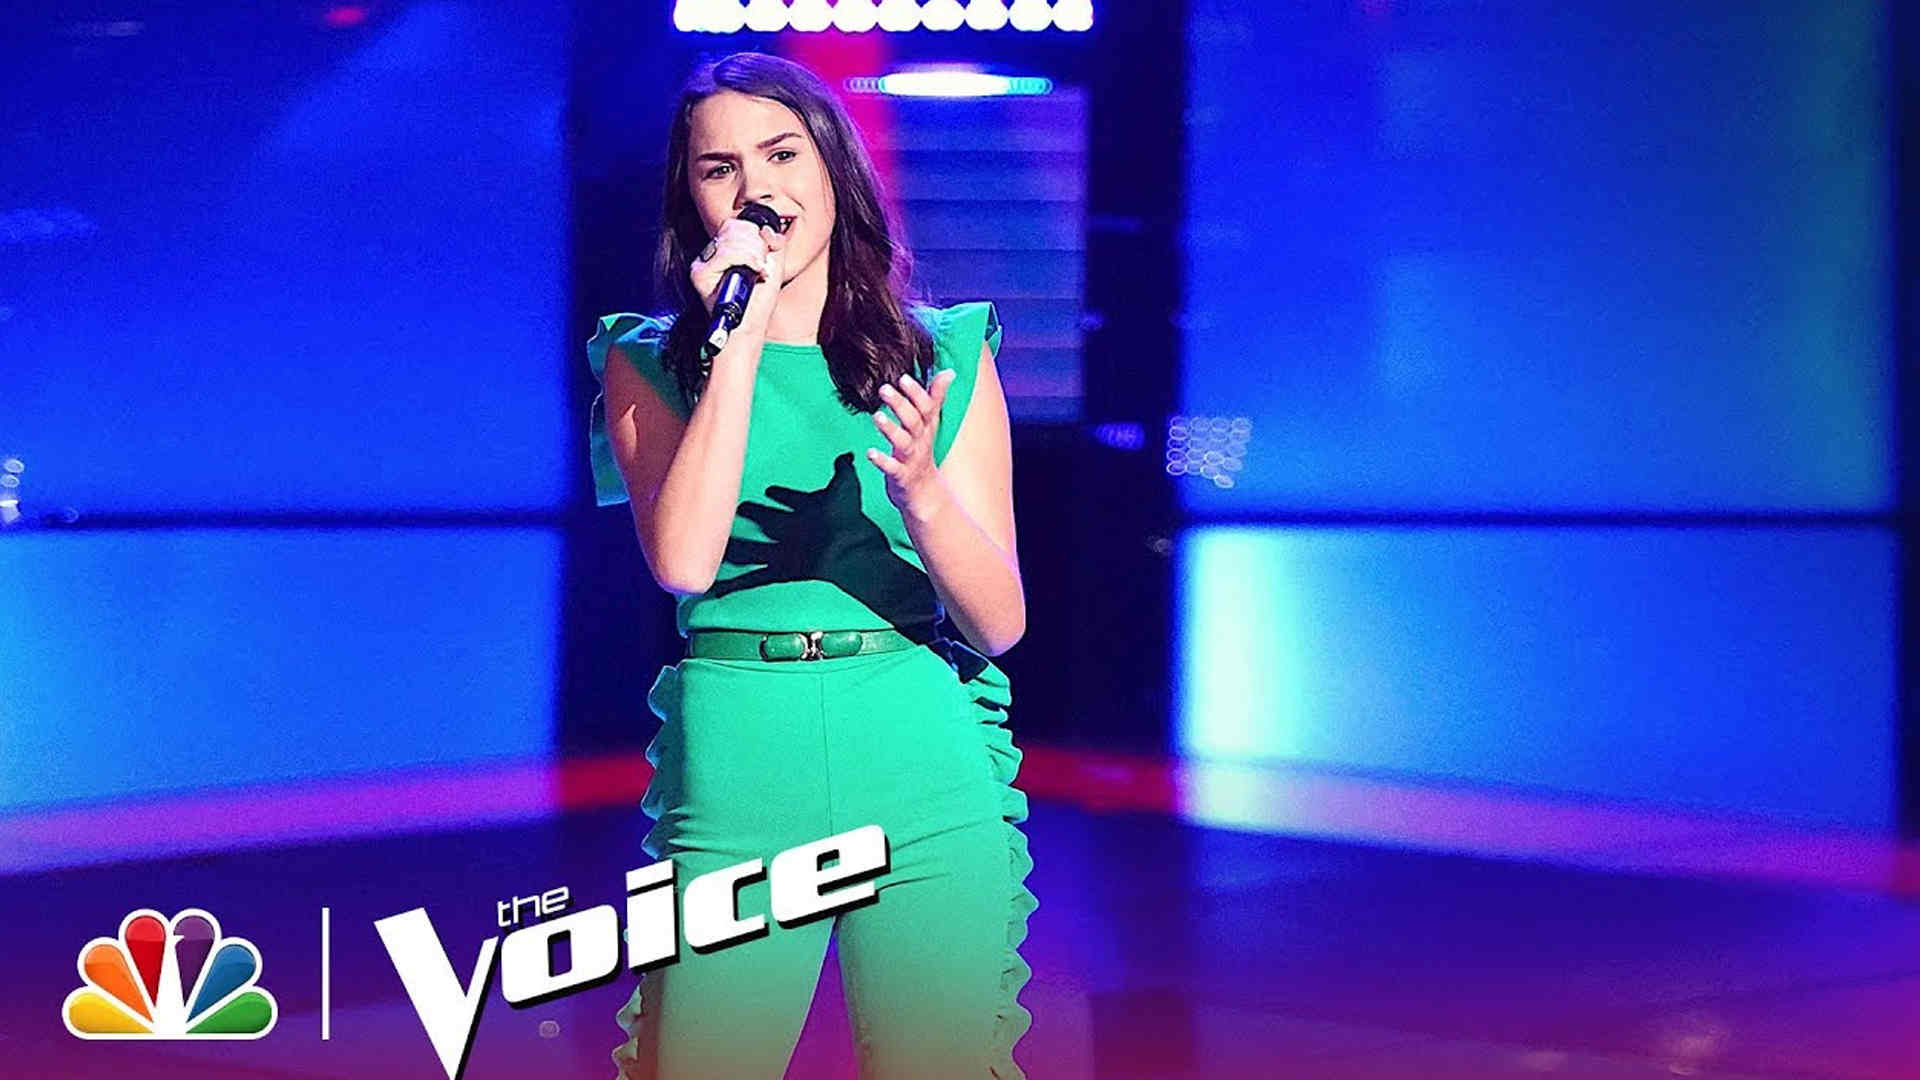 Vote Reagan Strange The Voice 2018 Live Top 13 on 19 November 2018 with The Voice 2018 Voting App Online